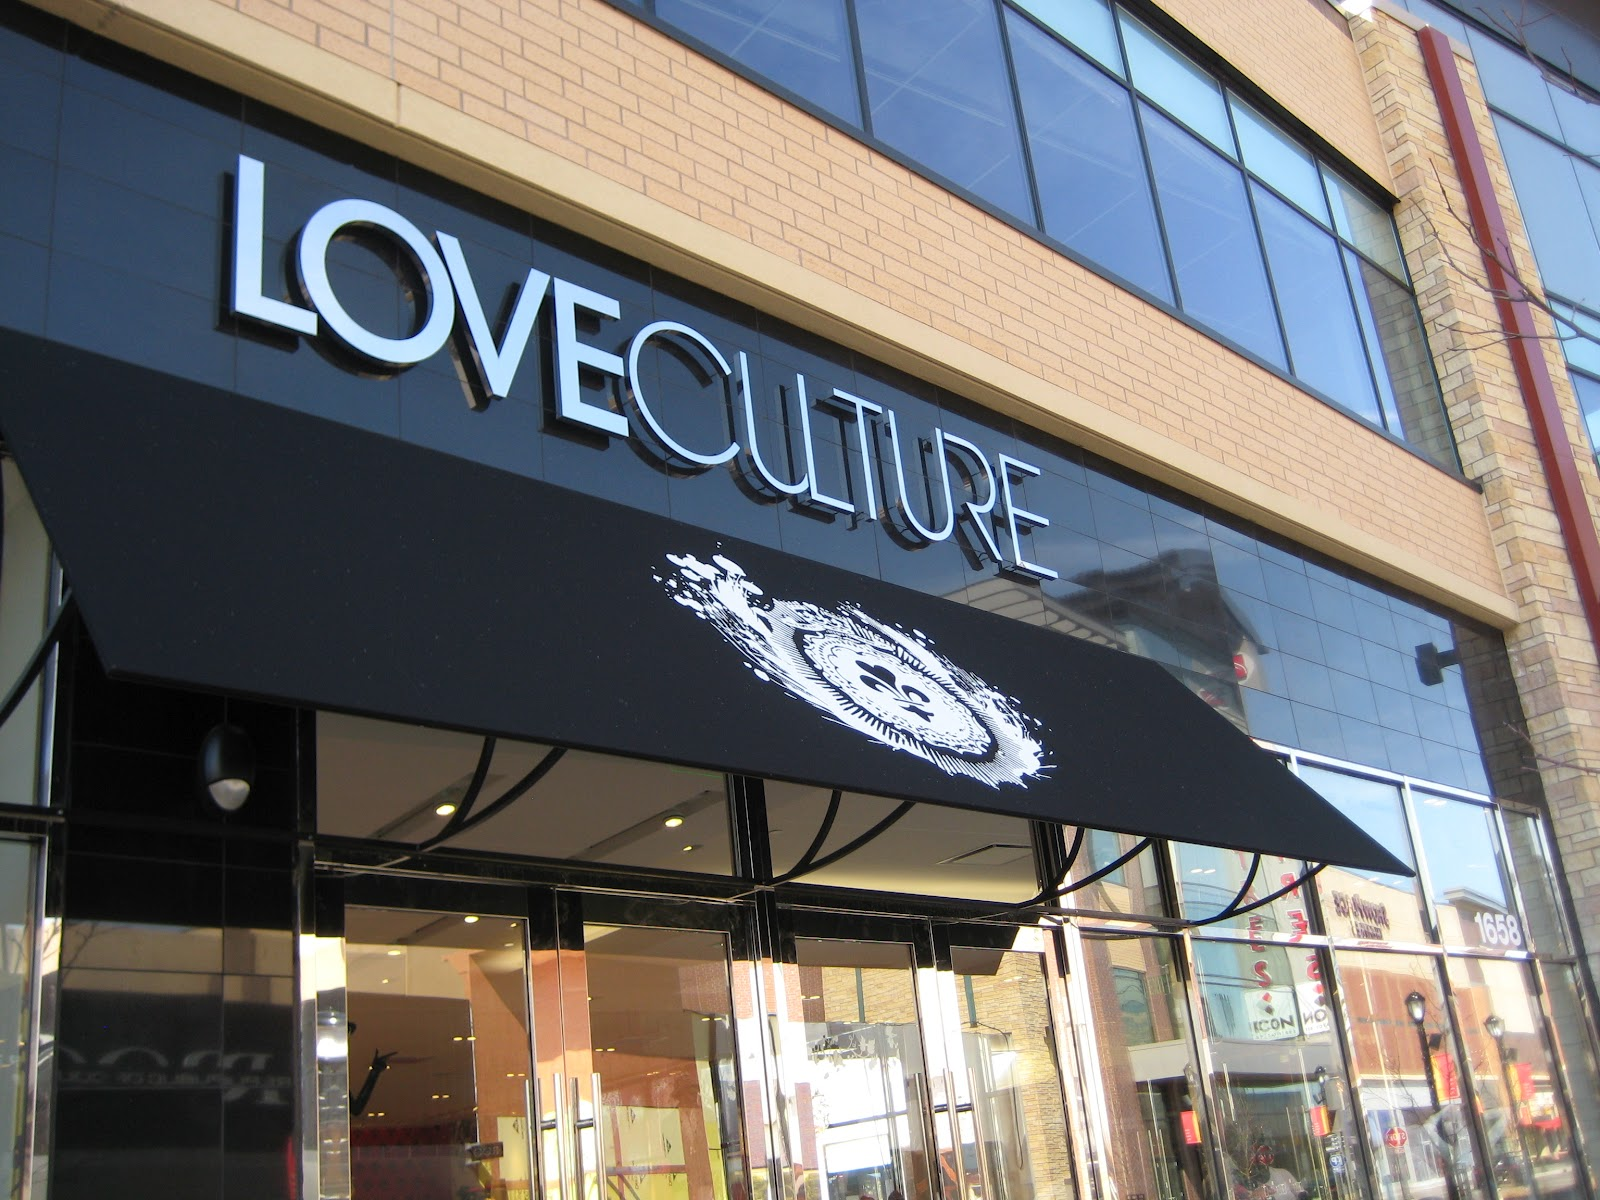 Culture clothing store